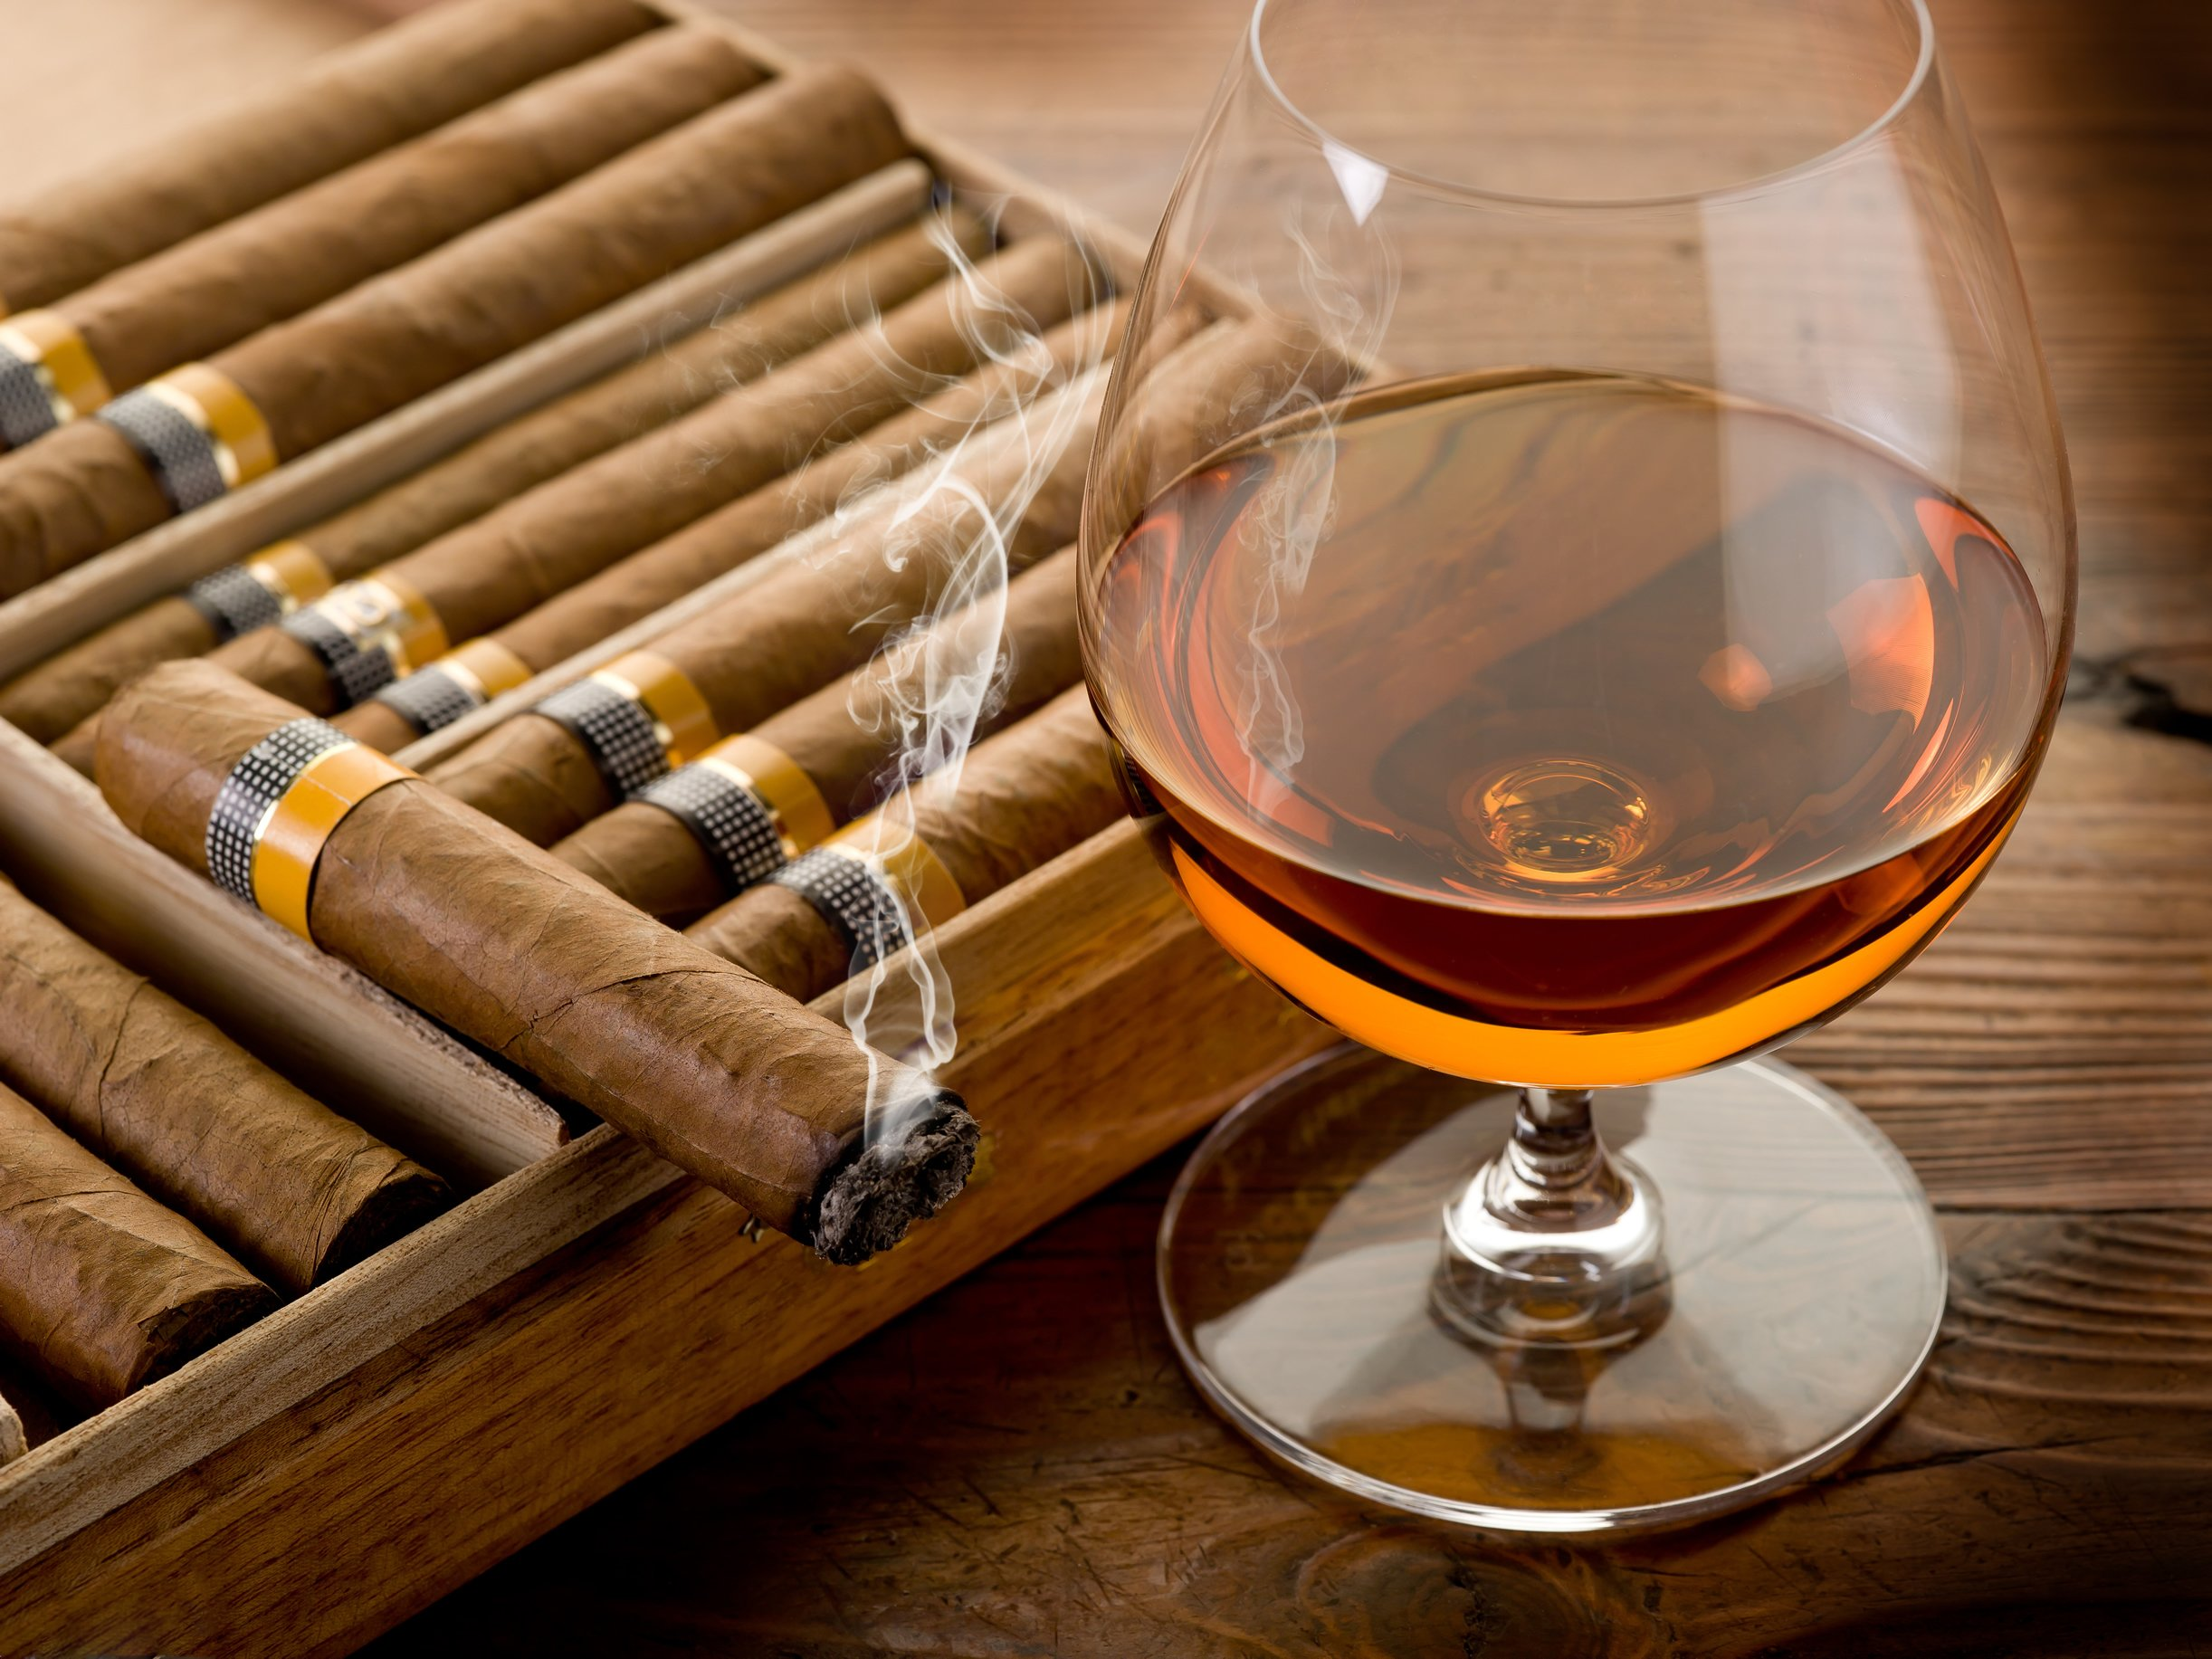 tobacco bokeh smoke smoking cigar drink alcohol drinks glass wallpaper 2444x1833